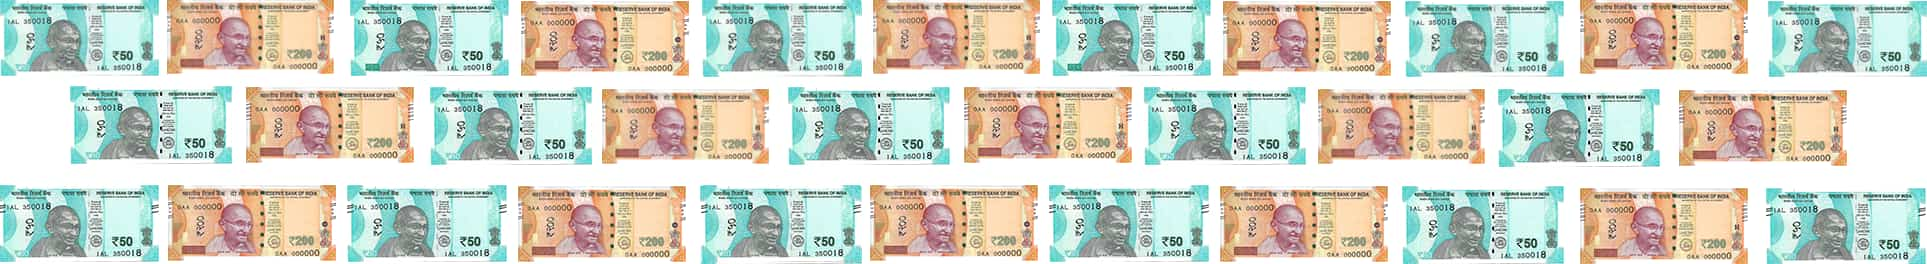 New 50 and 200 rupees notes: Take this quiz to spot the fake